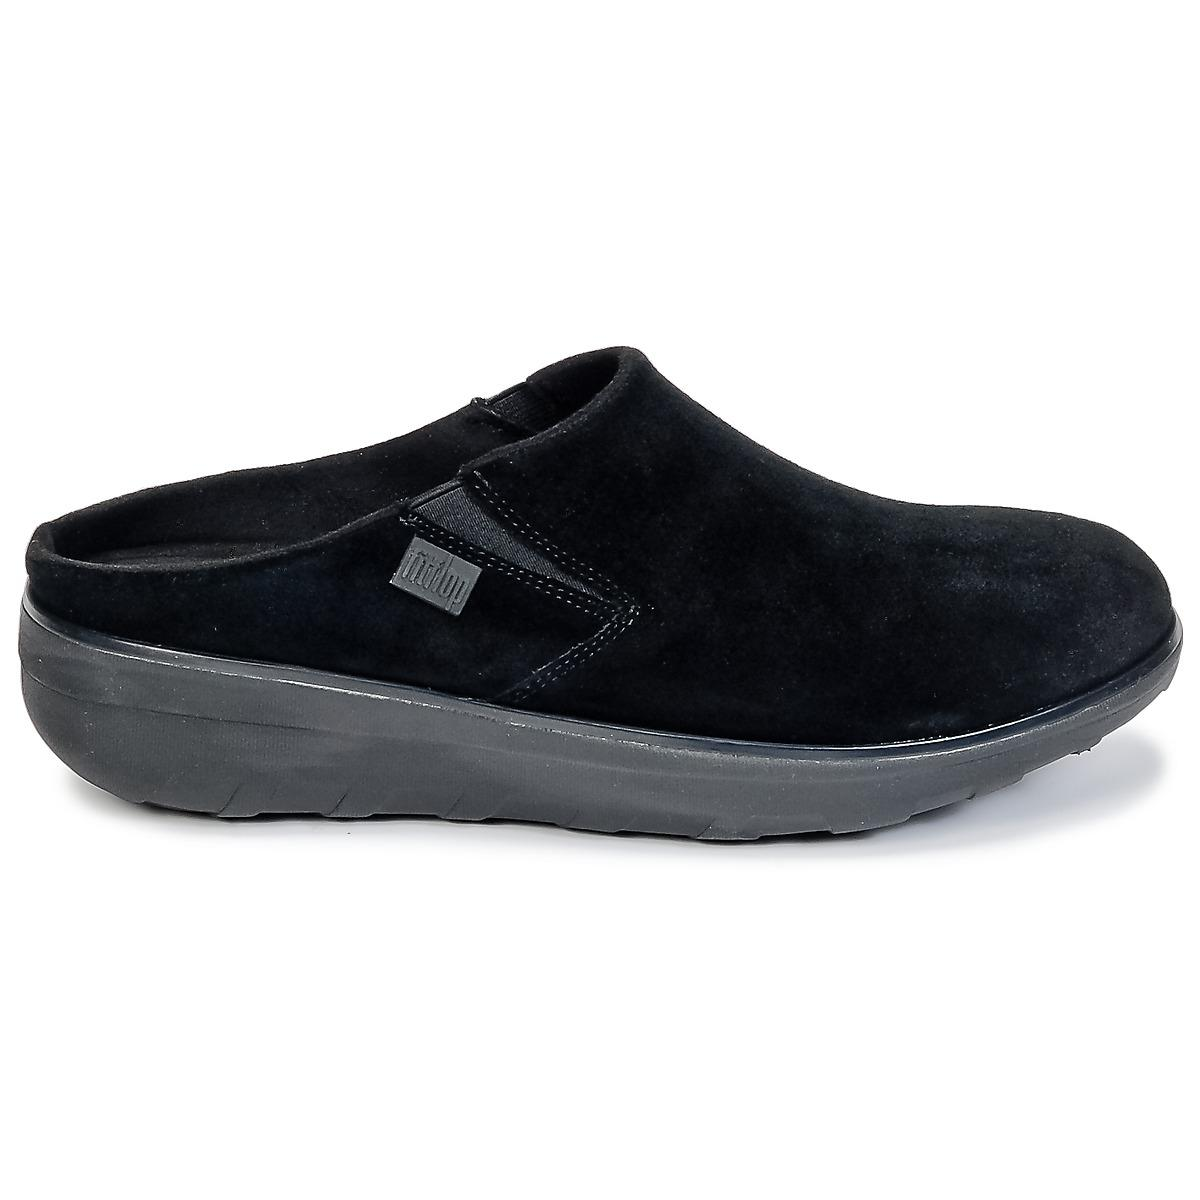 a633b6c3c17f Fitflop - Black Loaff Suede Clog Mules   Casual Shoes - Lyst. View  fullscreen